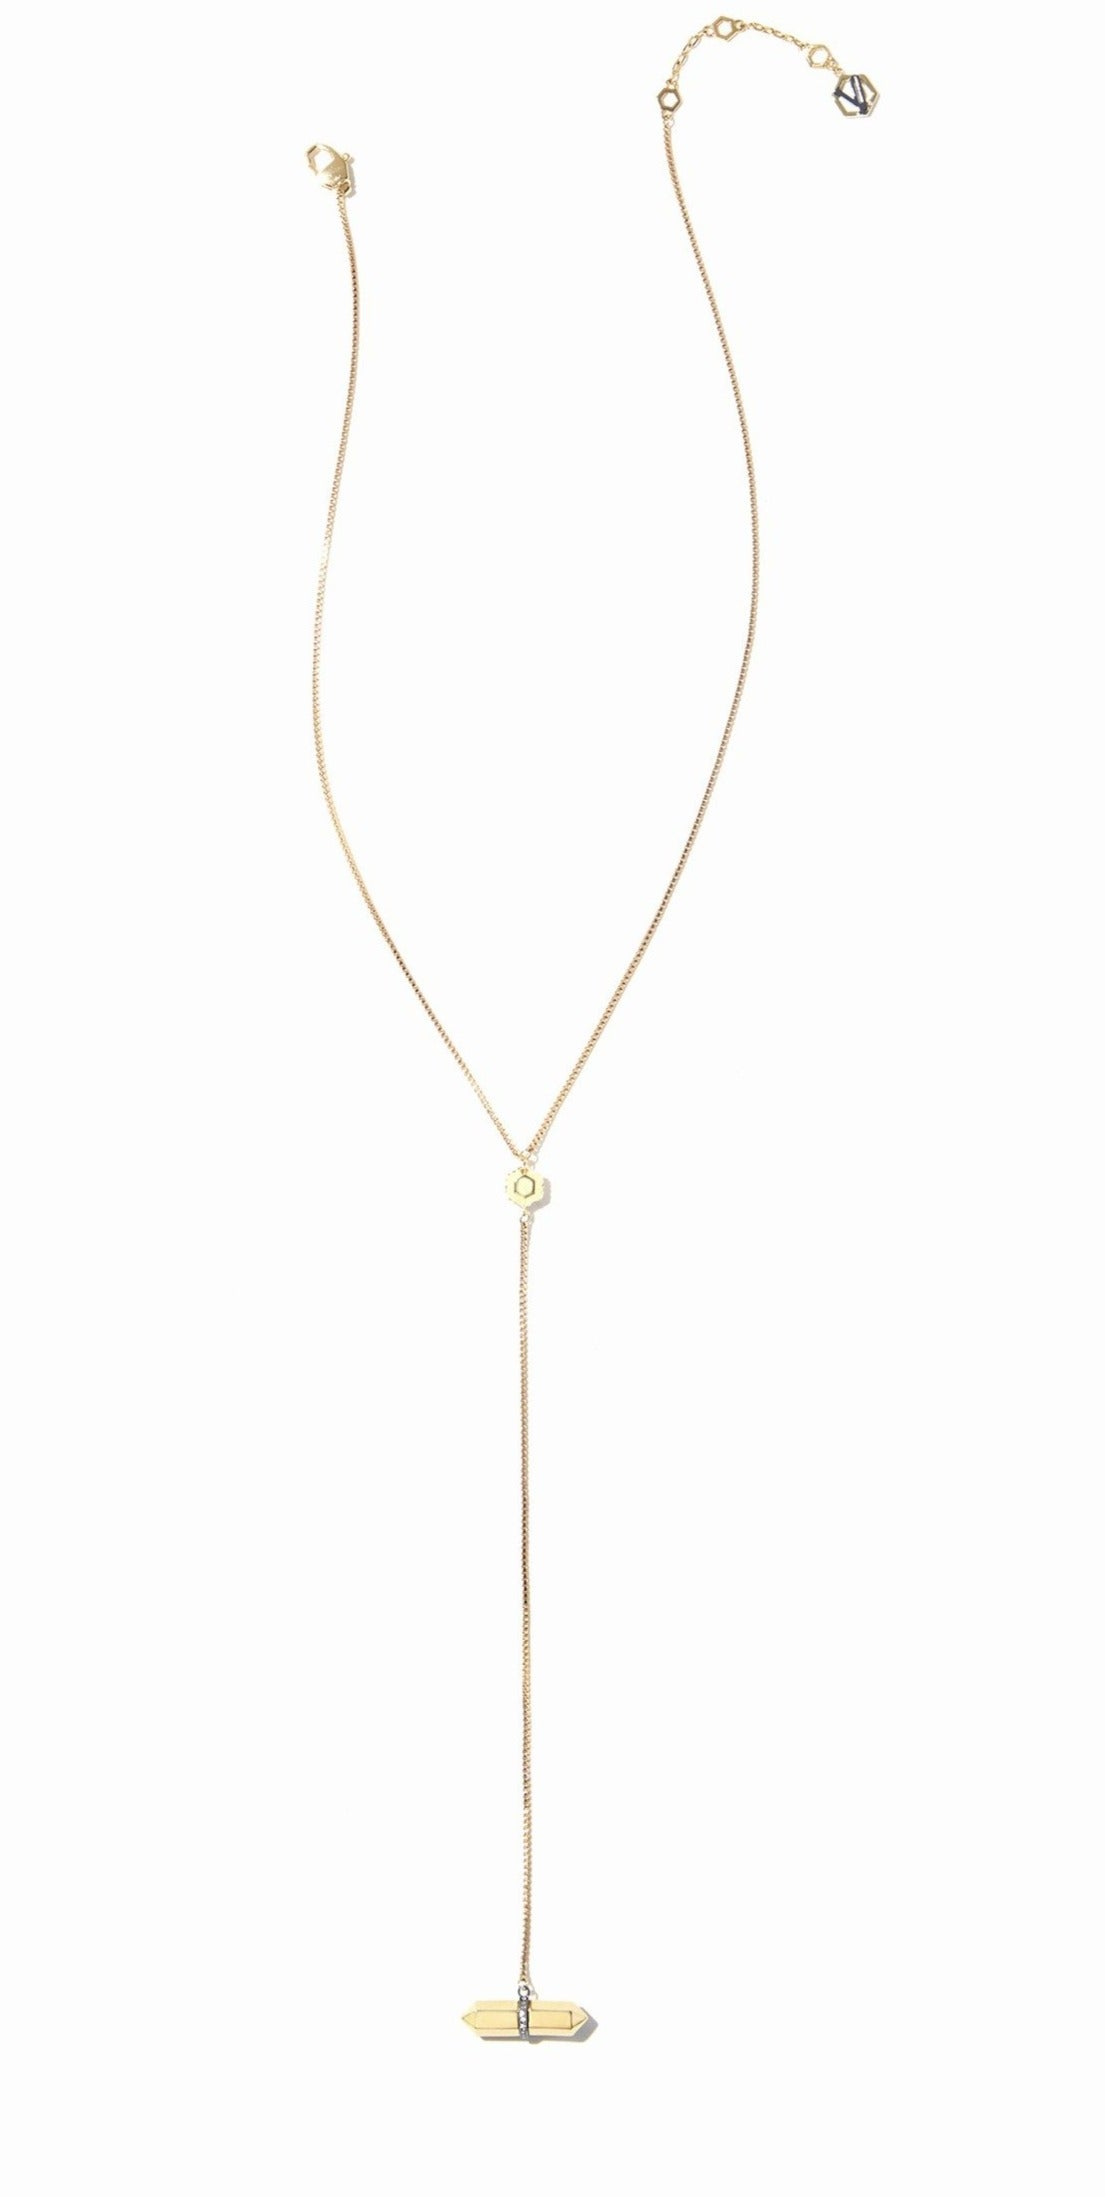 Colette Drop Necklace - 2 Tone Gold and Hematite